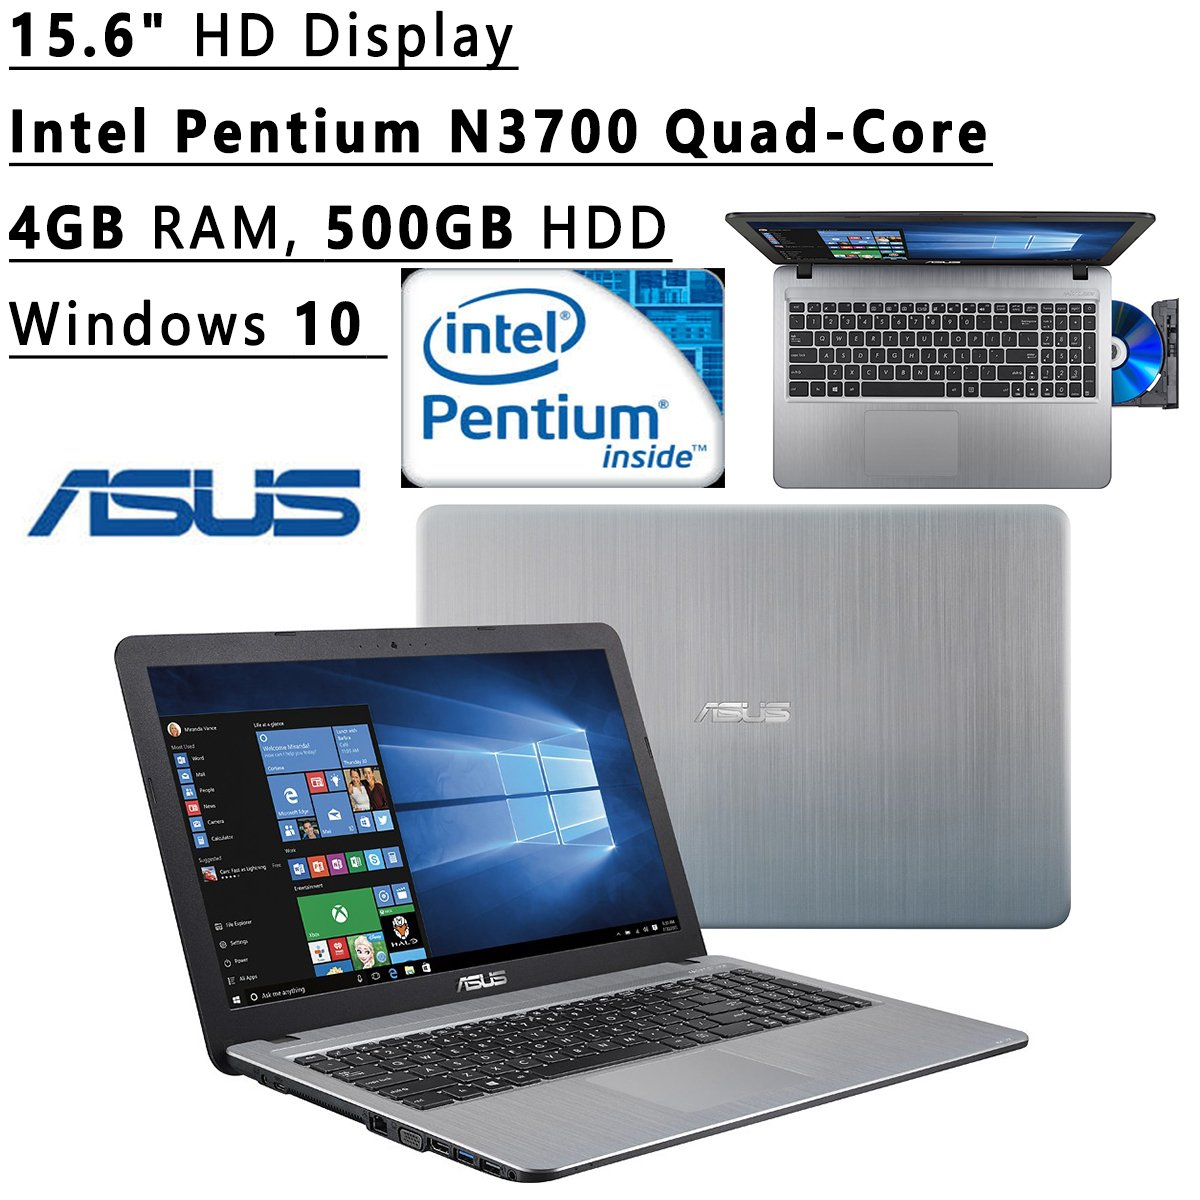 ASUS F9F NOTEBOOK CARD READER DRIVER FOR WINDOWS MAC